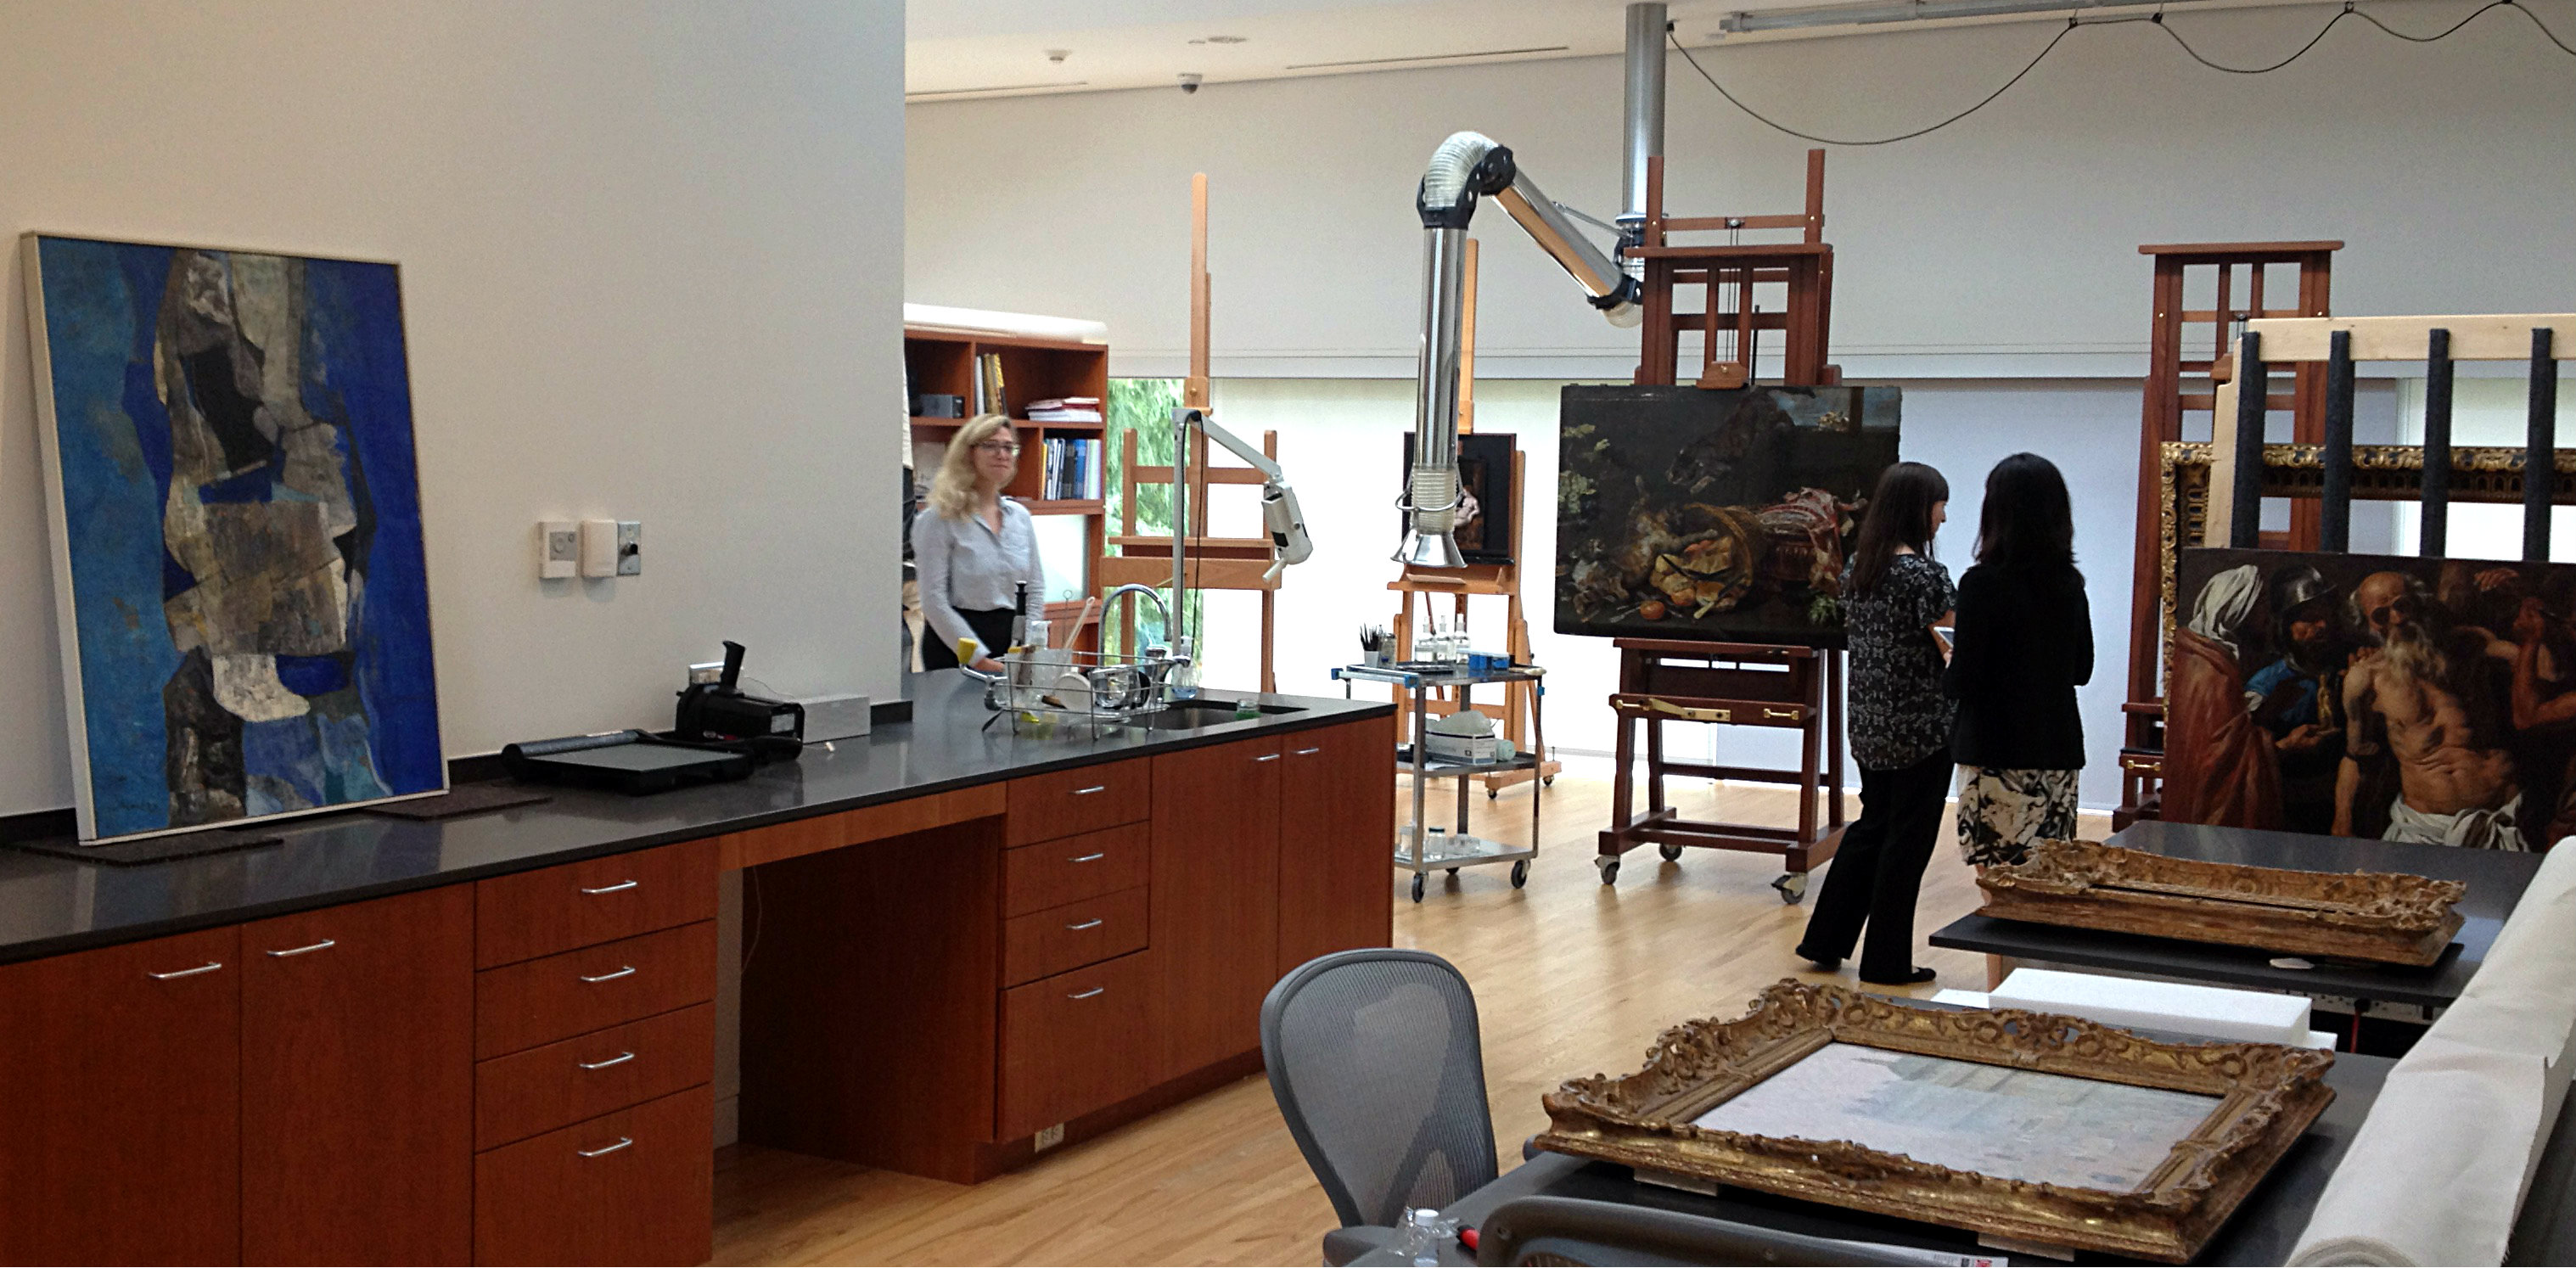 The DMA's conservation studio